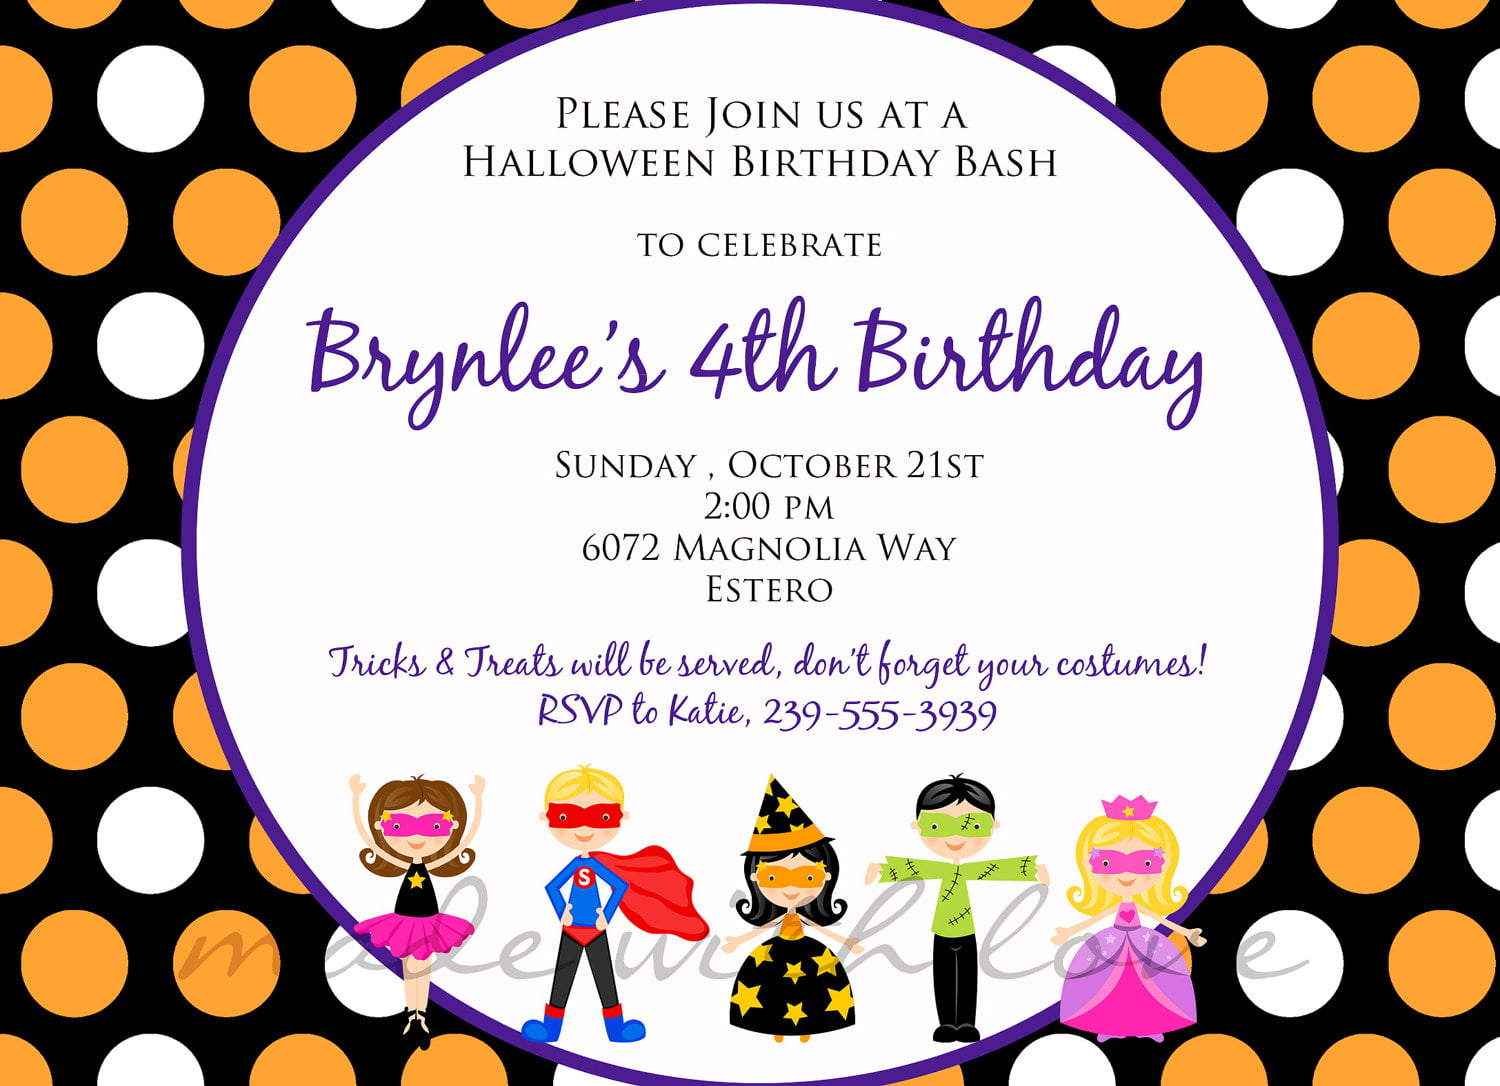 birthday party invitation letter for kids - Keni.candlecomfortzone.com